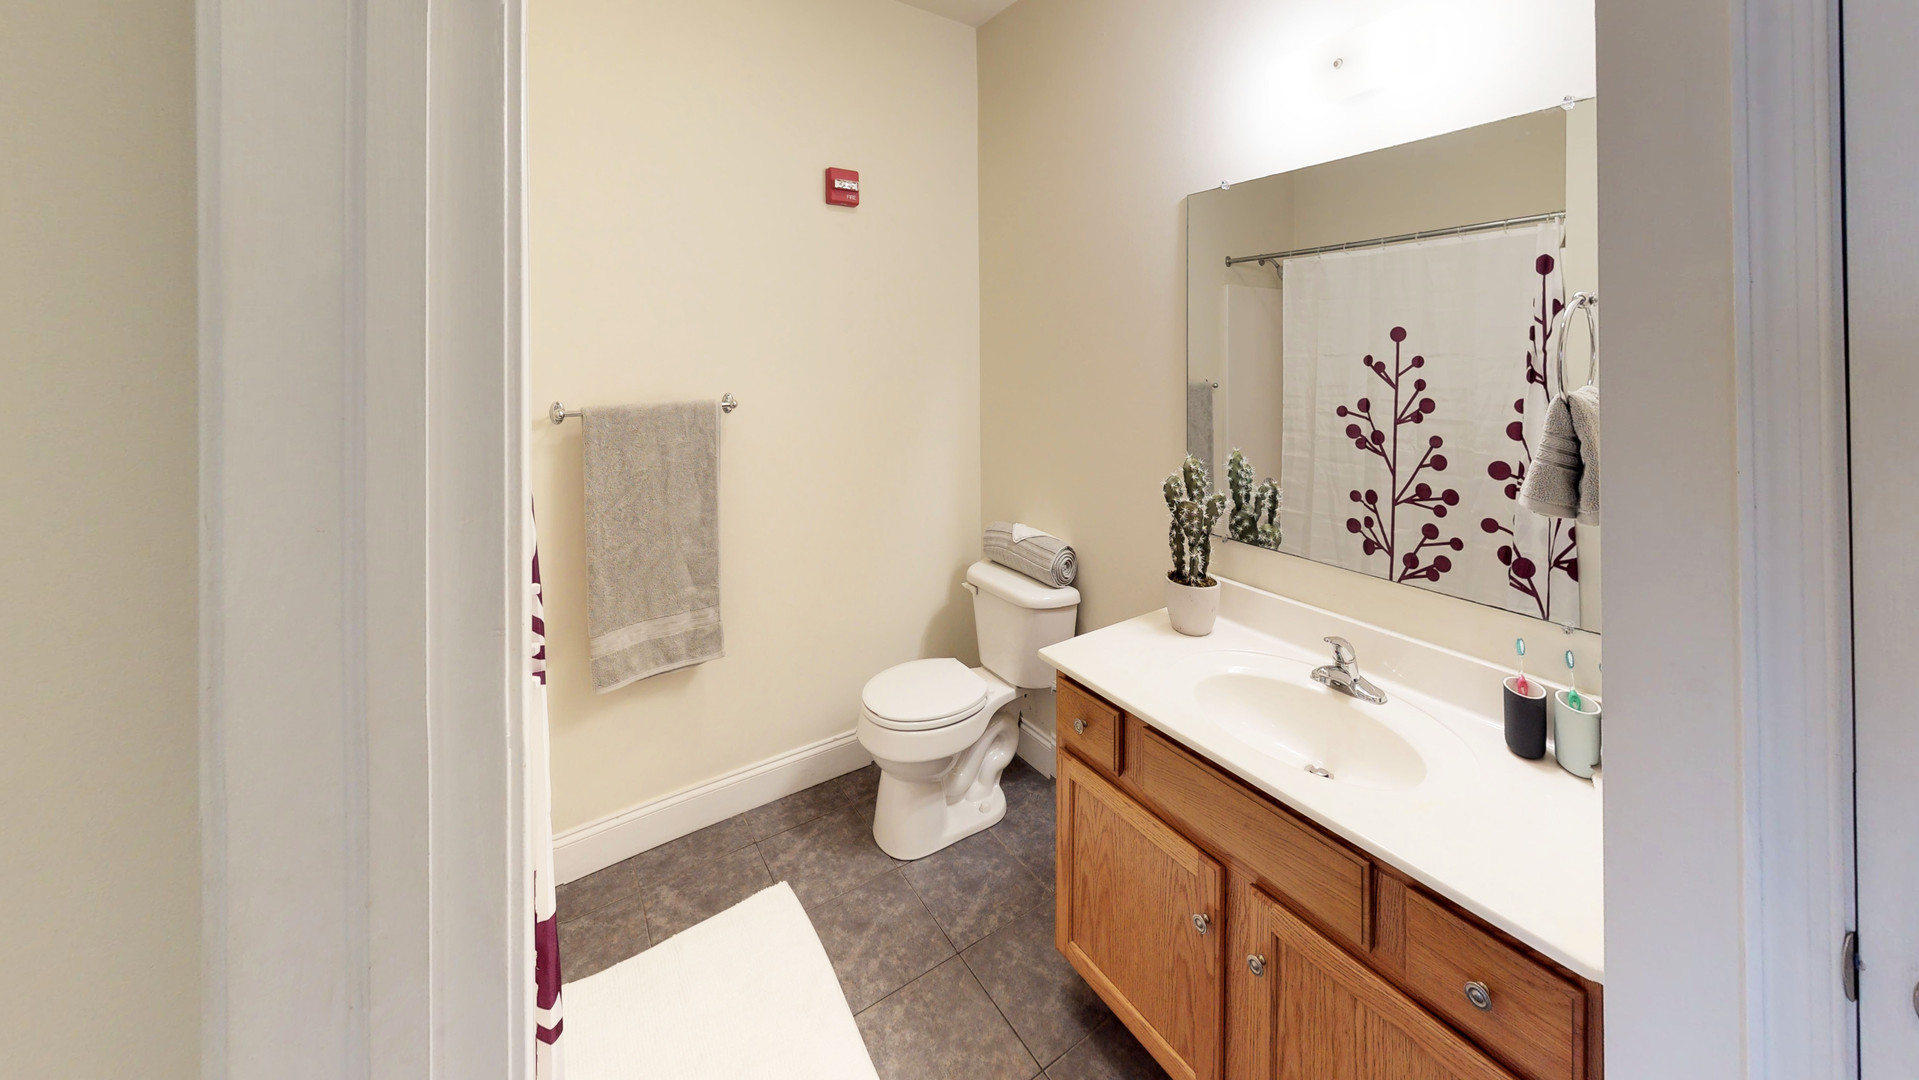 Full-Sized Bathrooms with Large Vanities